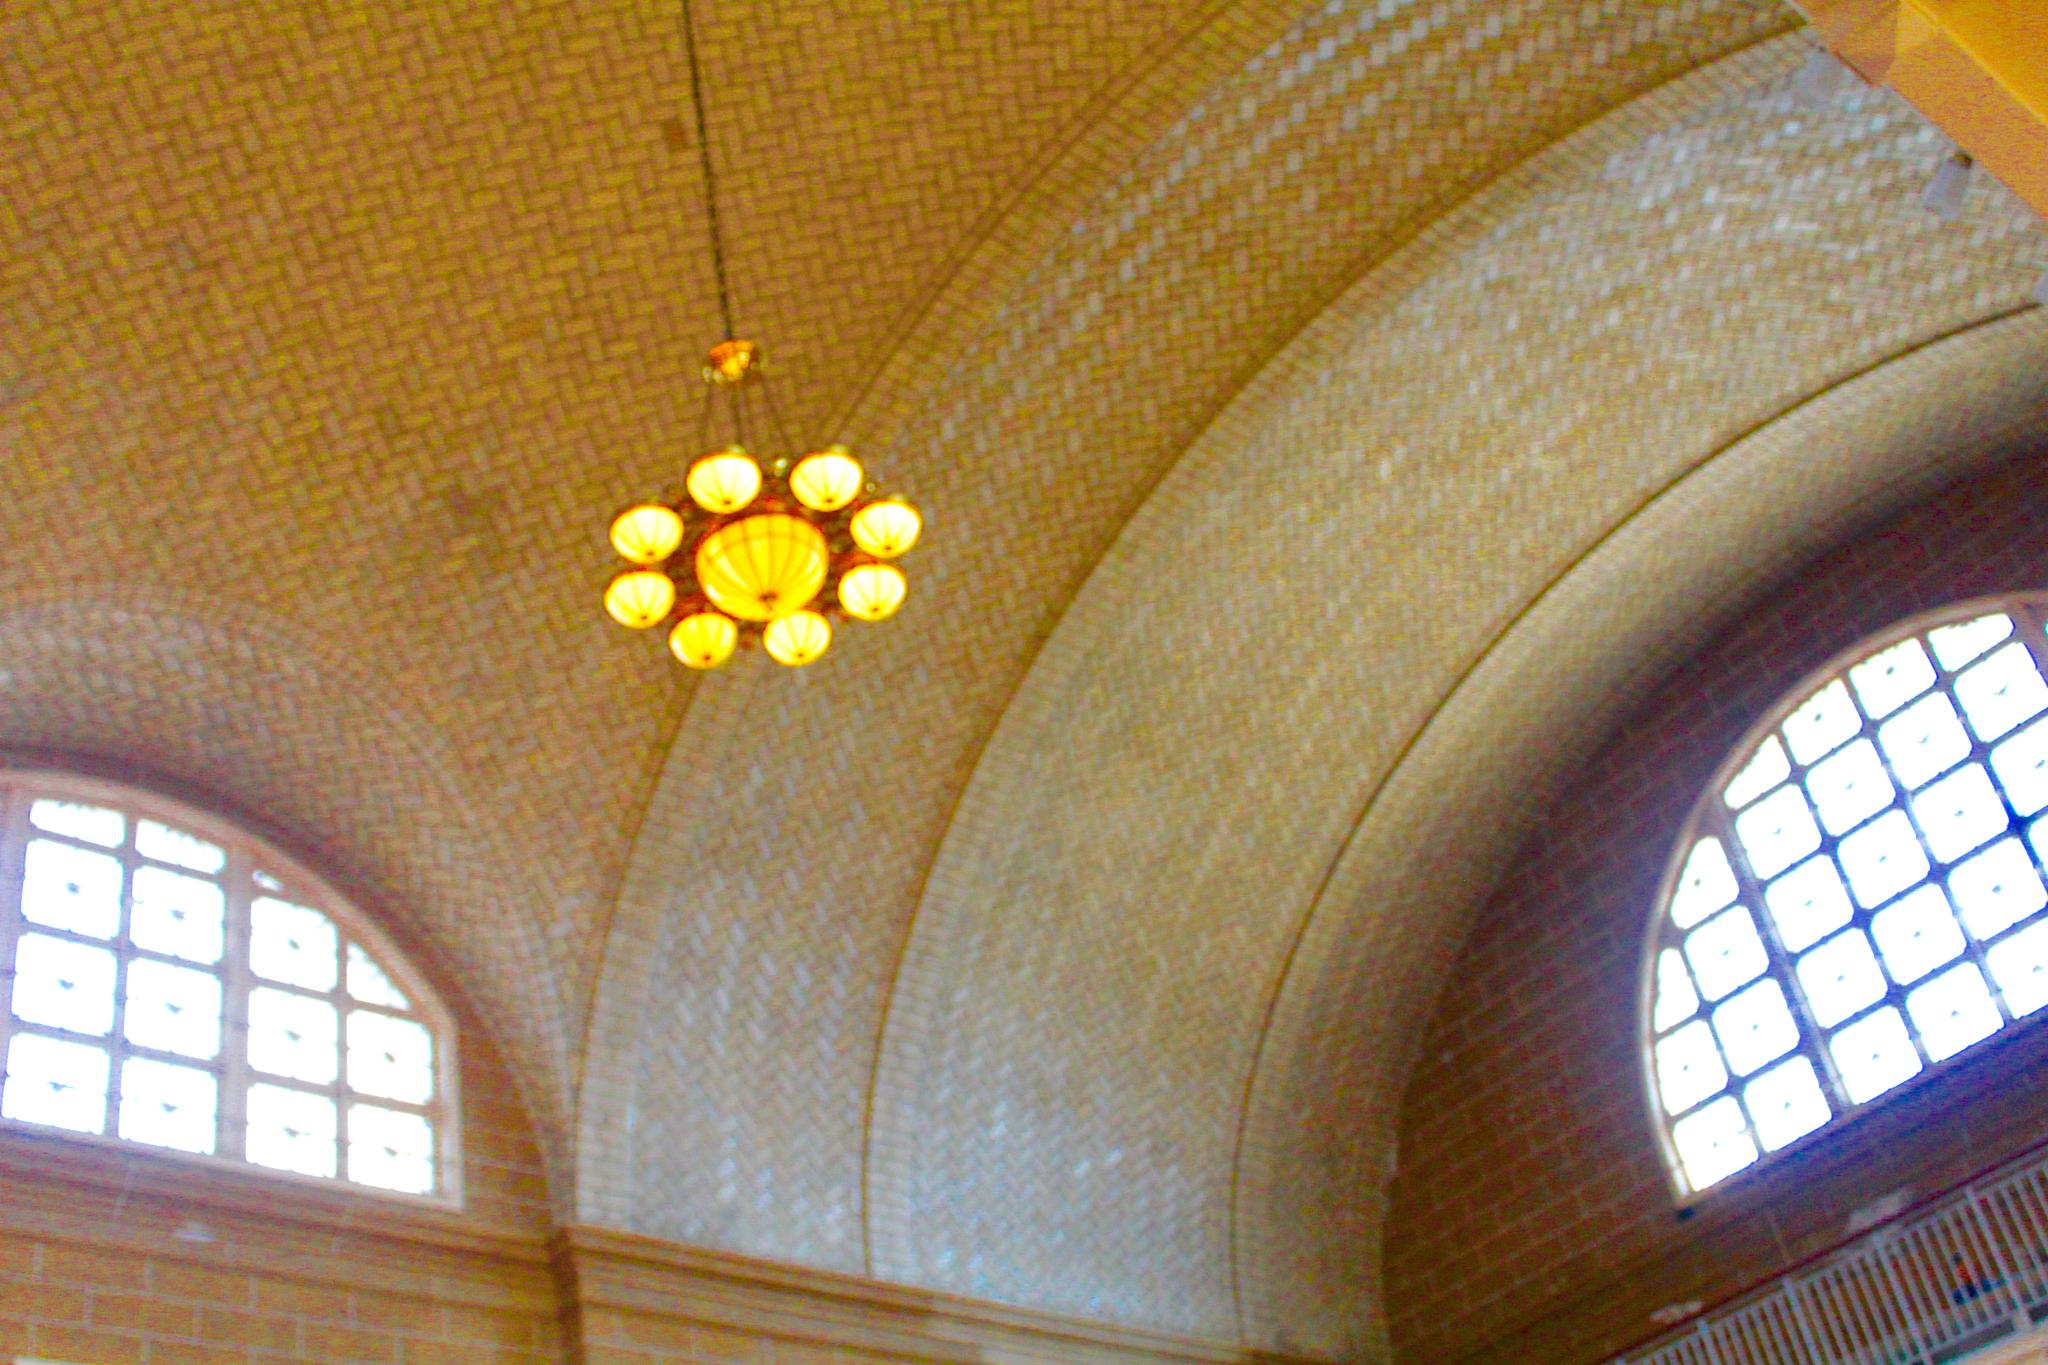 View of the Ceiling at Ellis Island by Snickandmephotography